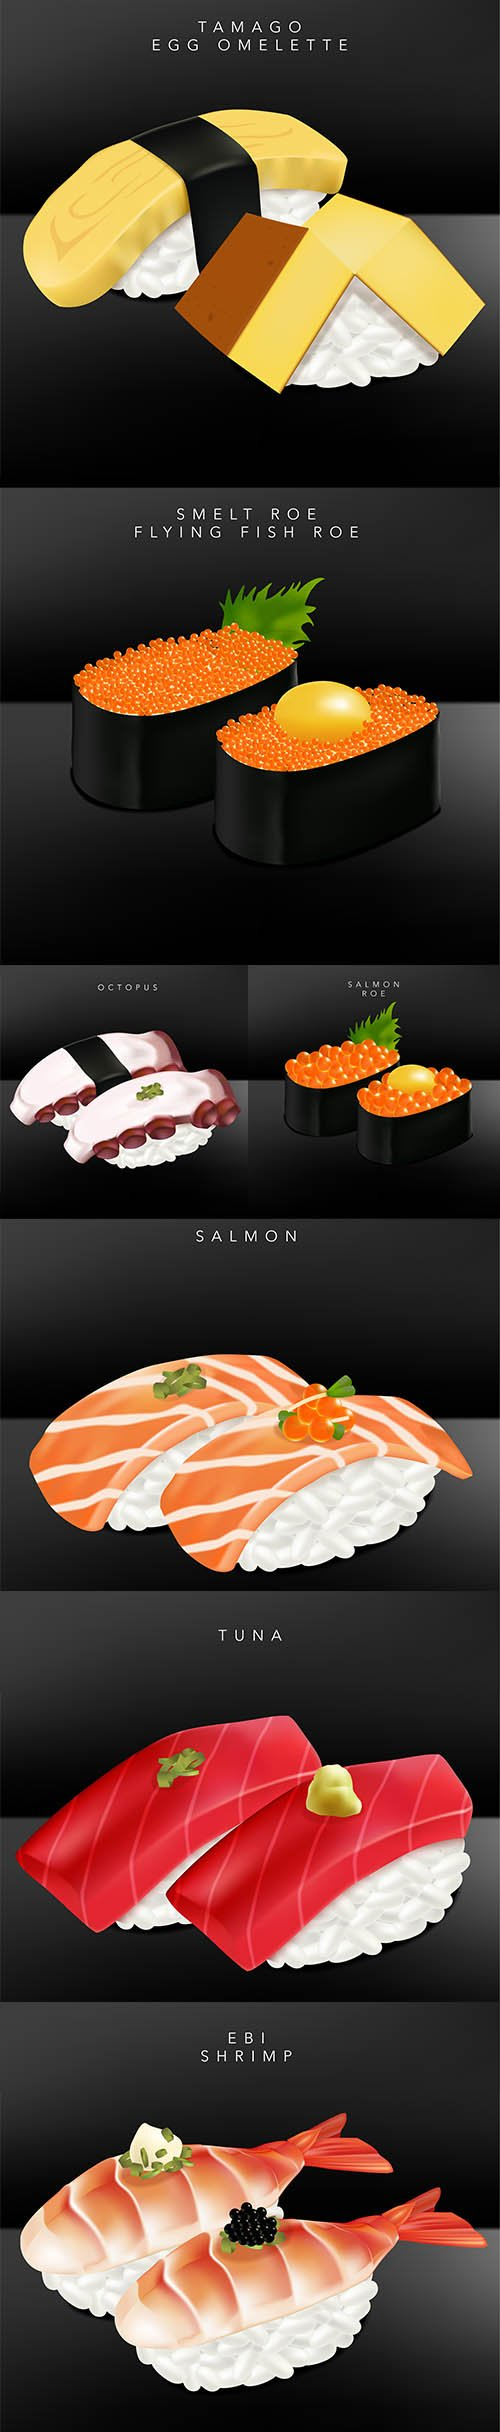 Japanese Dining Sushi Realistic Vector Illustration